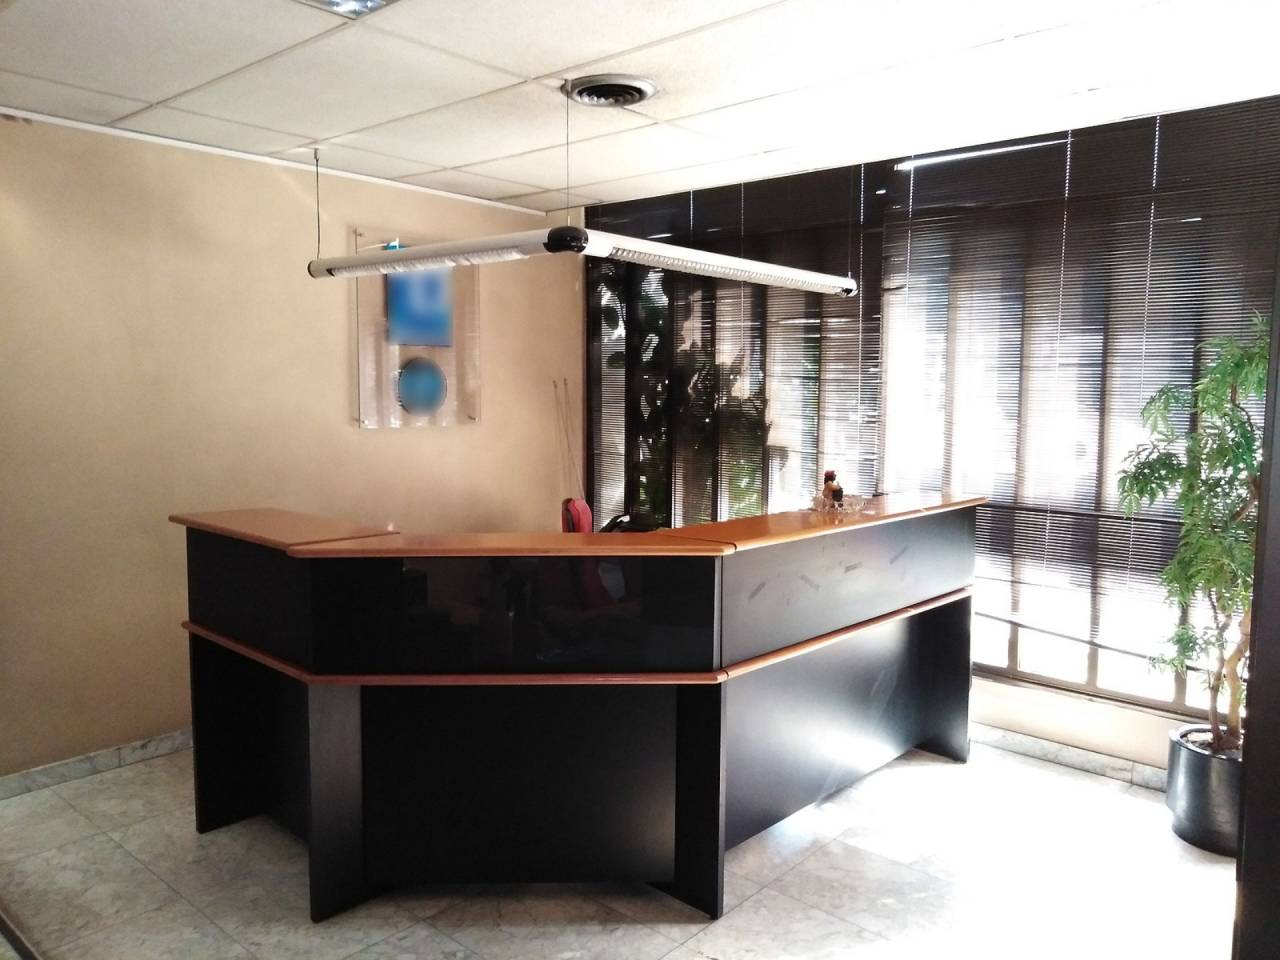 Local comercial en alquiler El Fort Pienc (Barcelona Capital)